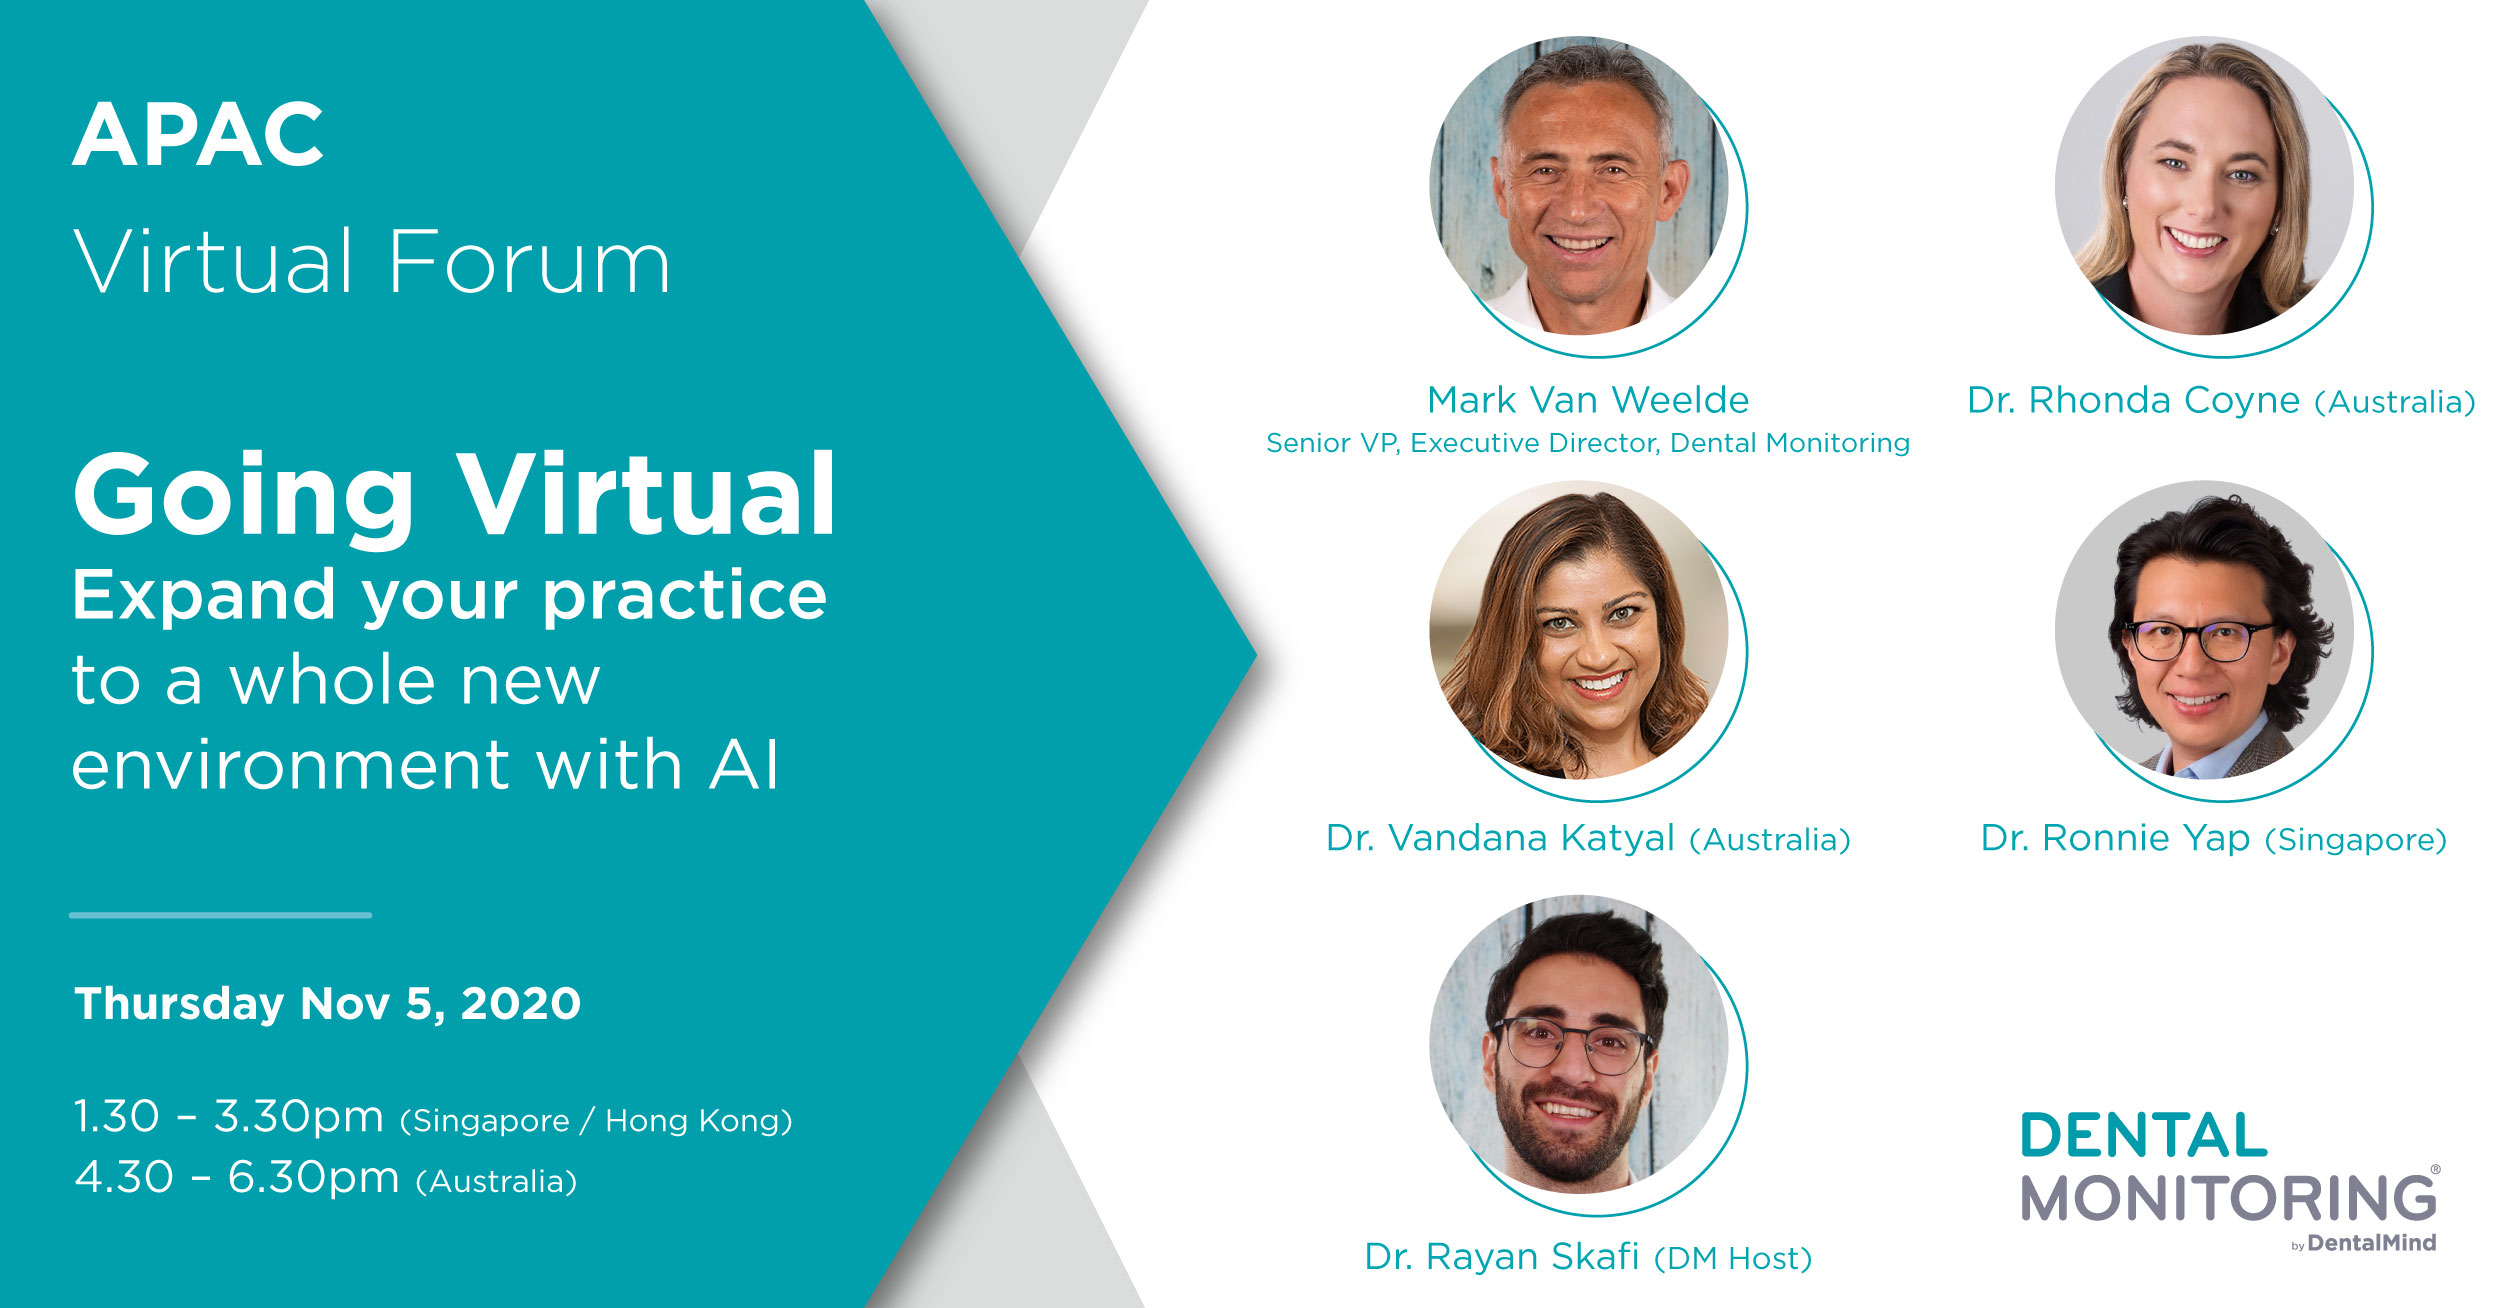 Going Virtual – Expand your practice to a whole new environment with AI